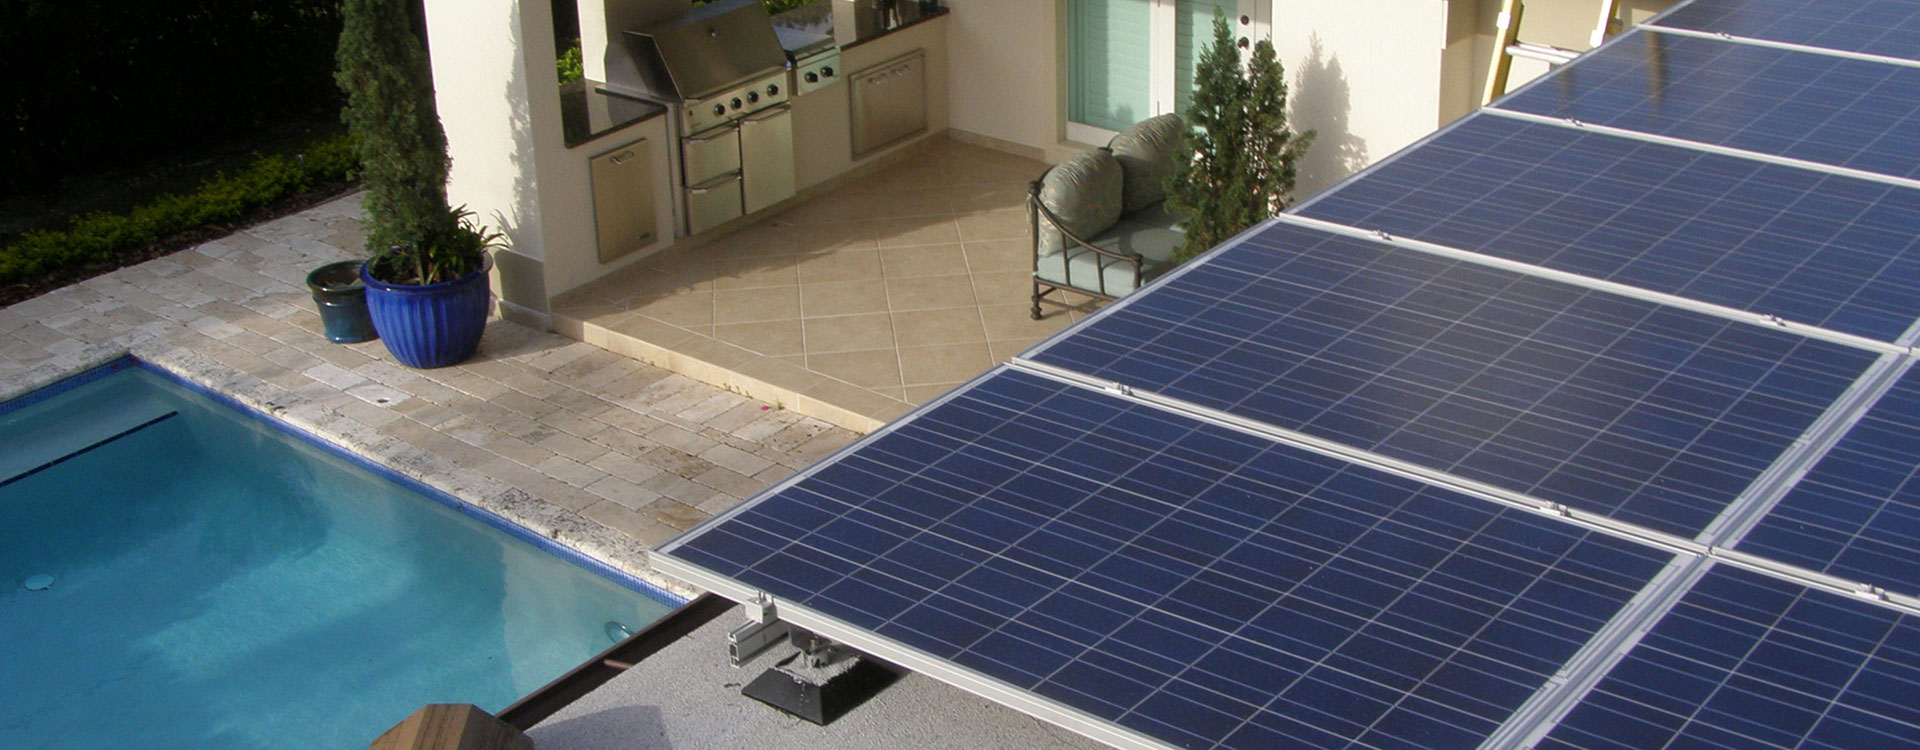 Home pompano beach solar panels residential electrician and prevnextpause dailygadgetfo Gallery